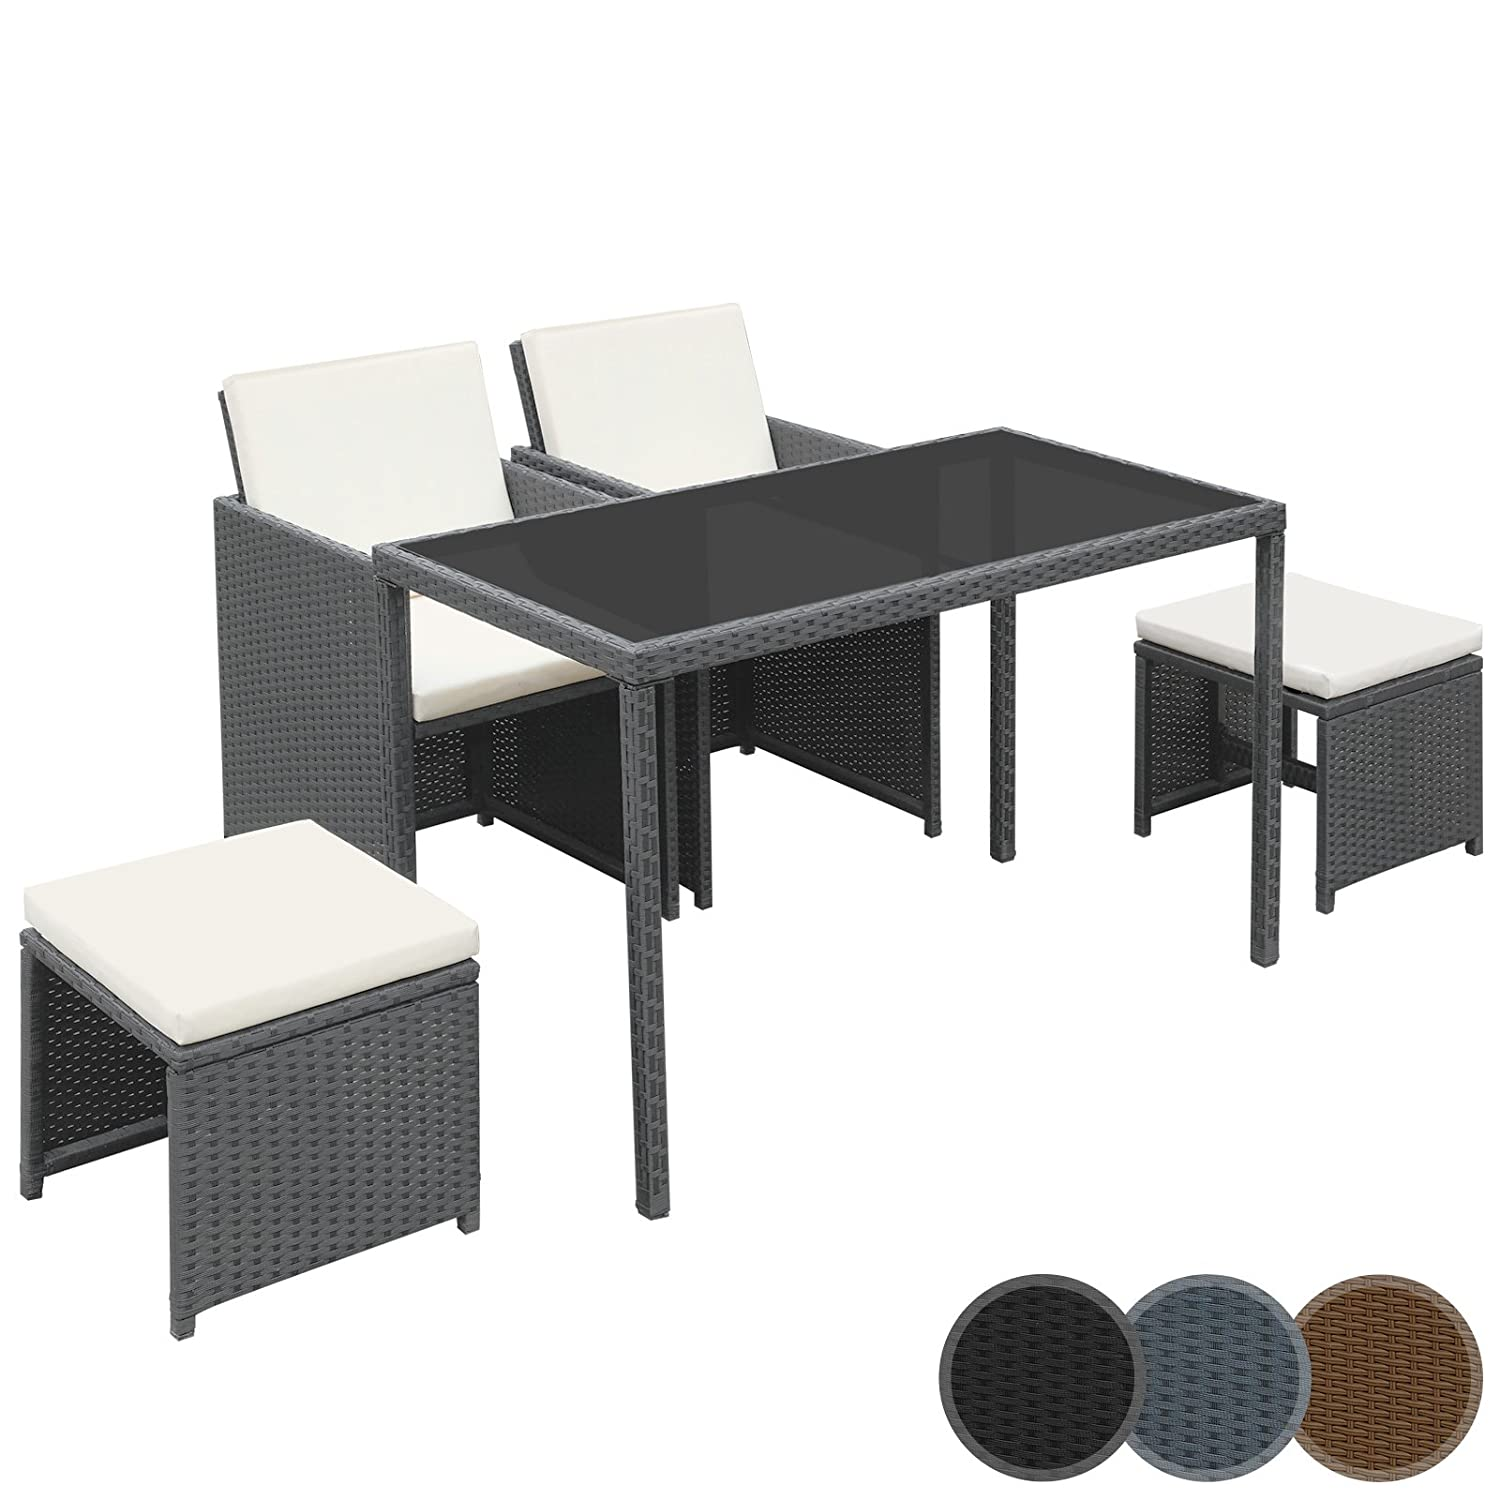 miadomodo polyrattan essgruppe sitzgruppe gartenm bel 5 teilig in der farbe nach ihrer wahl g nstig. Black Bedroom Furniture Sets. Home Design Ideas